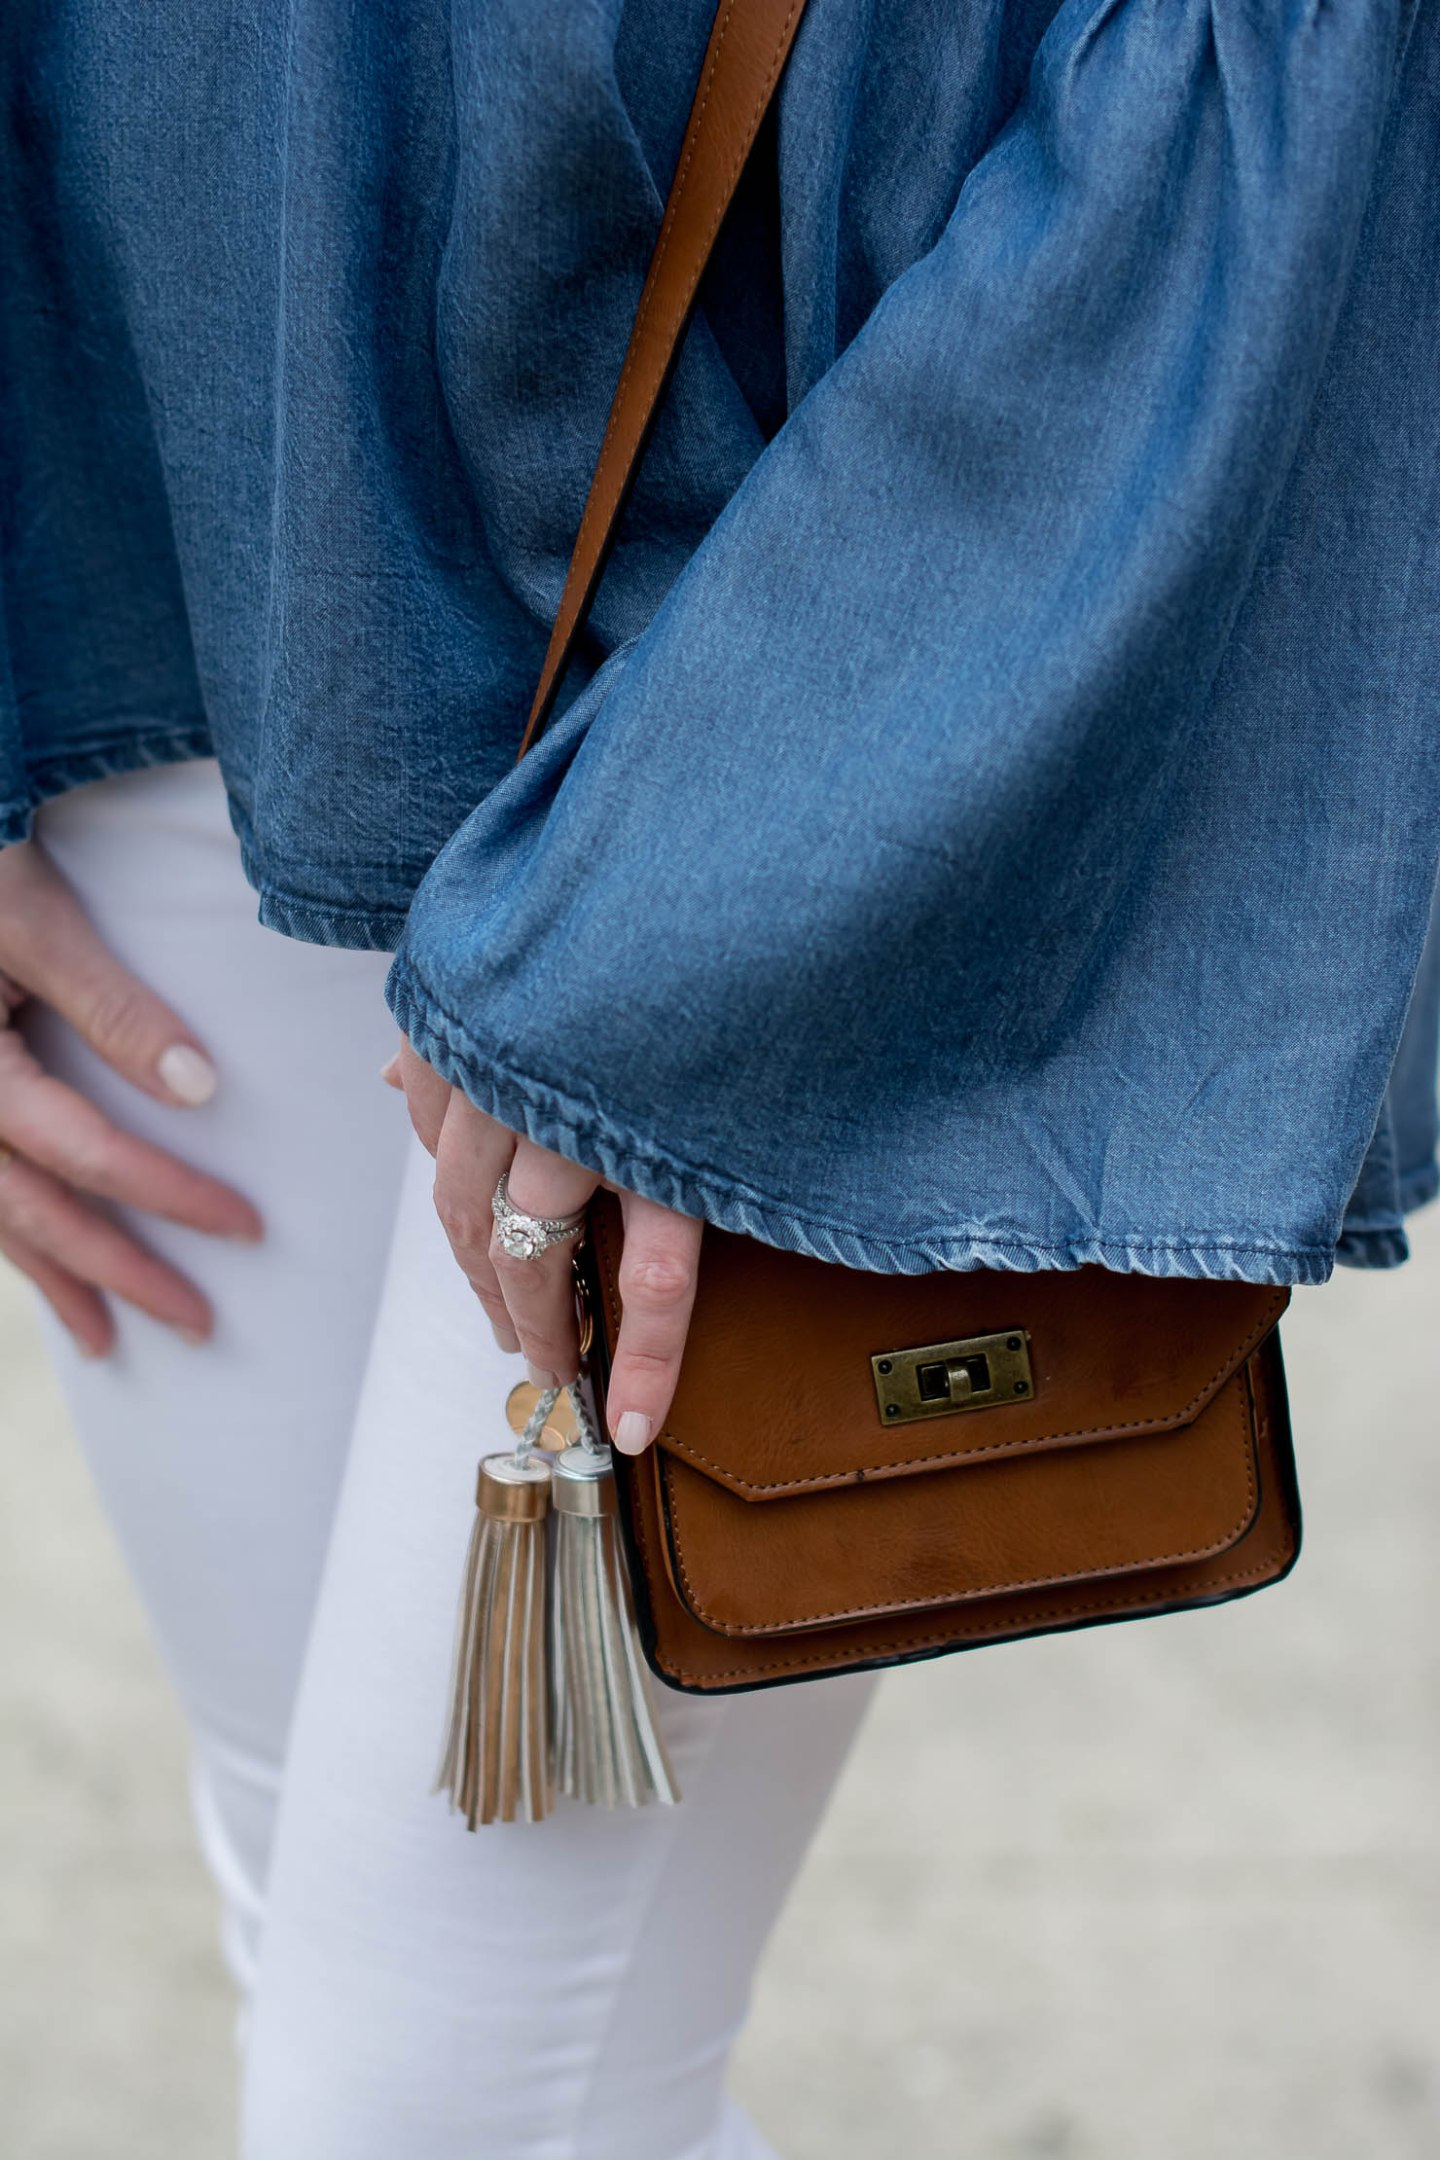 transitioning-white-jeans-for-fall-hm-denim-bell-sleeve-top-matisse-leopard-booties-metallic-bag-tassel-charms-8